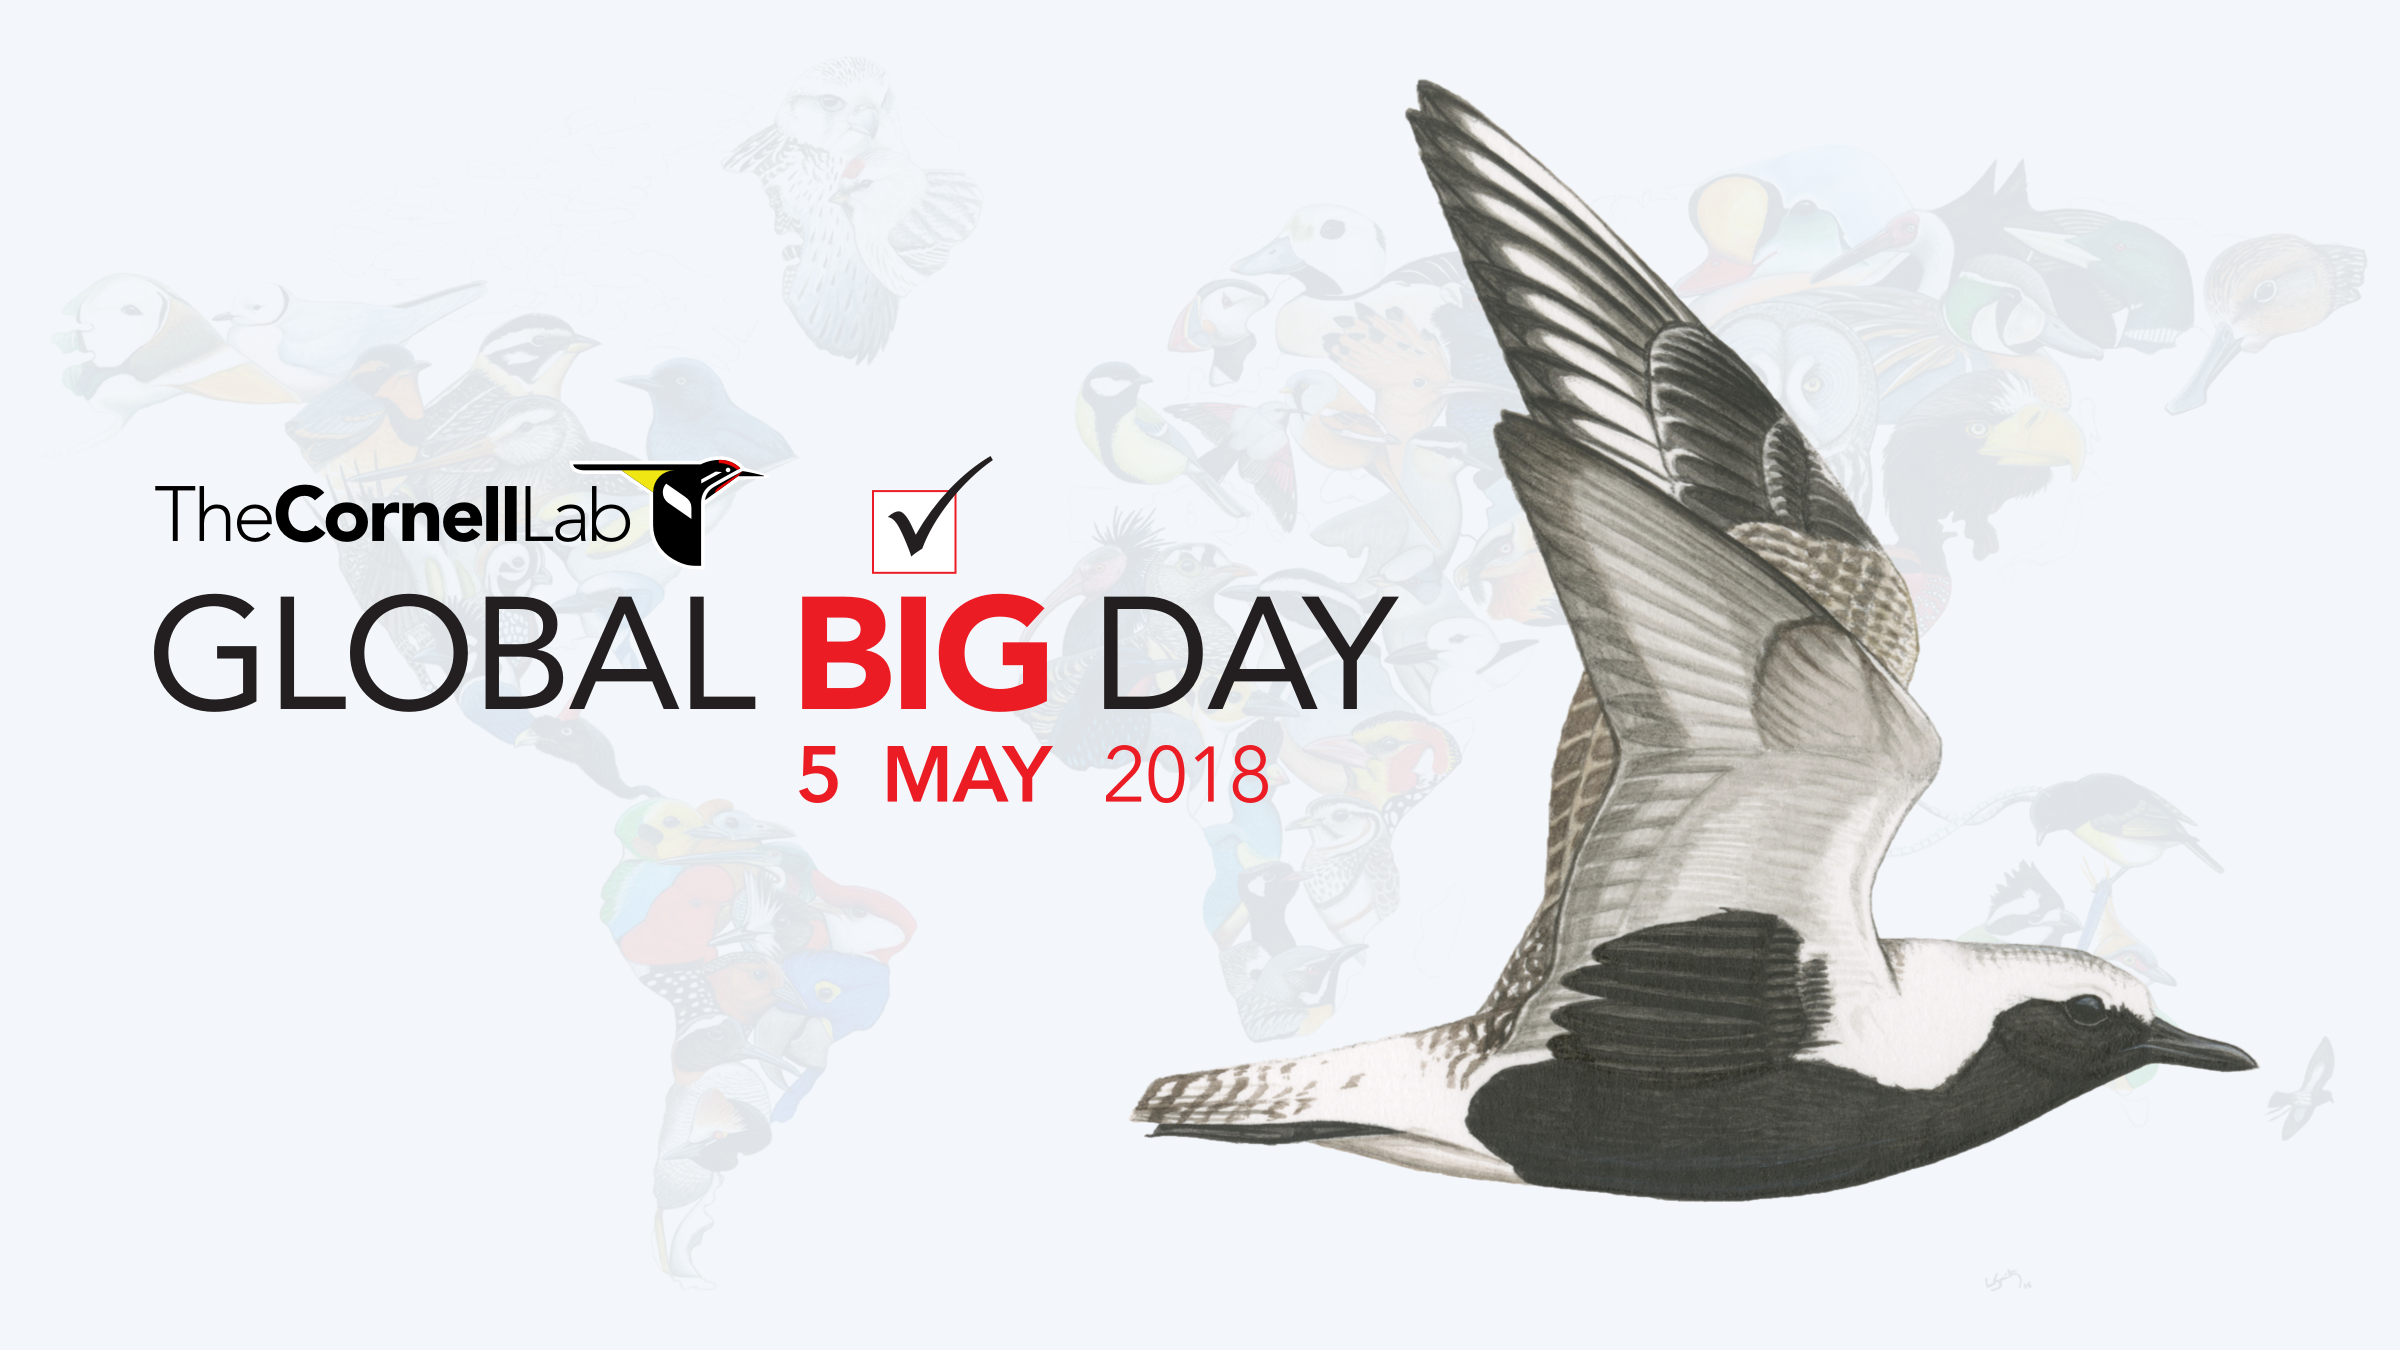 Global Big Day is just around the corner! Let's break a record!